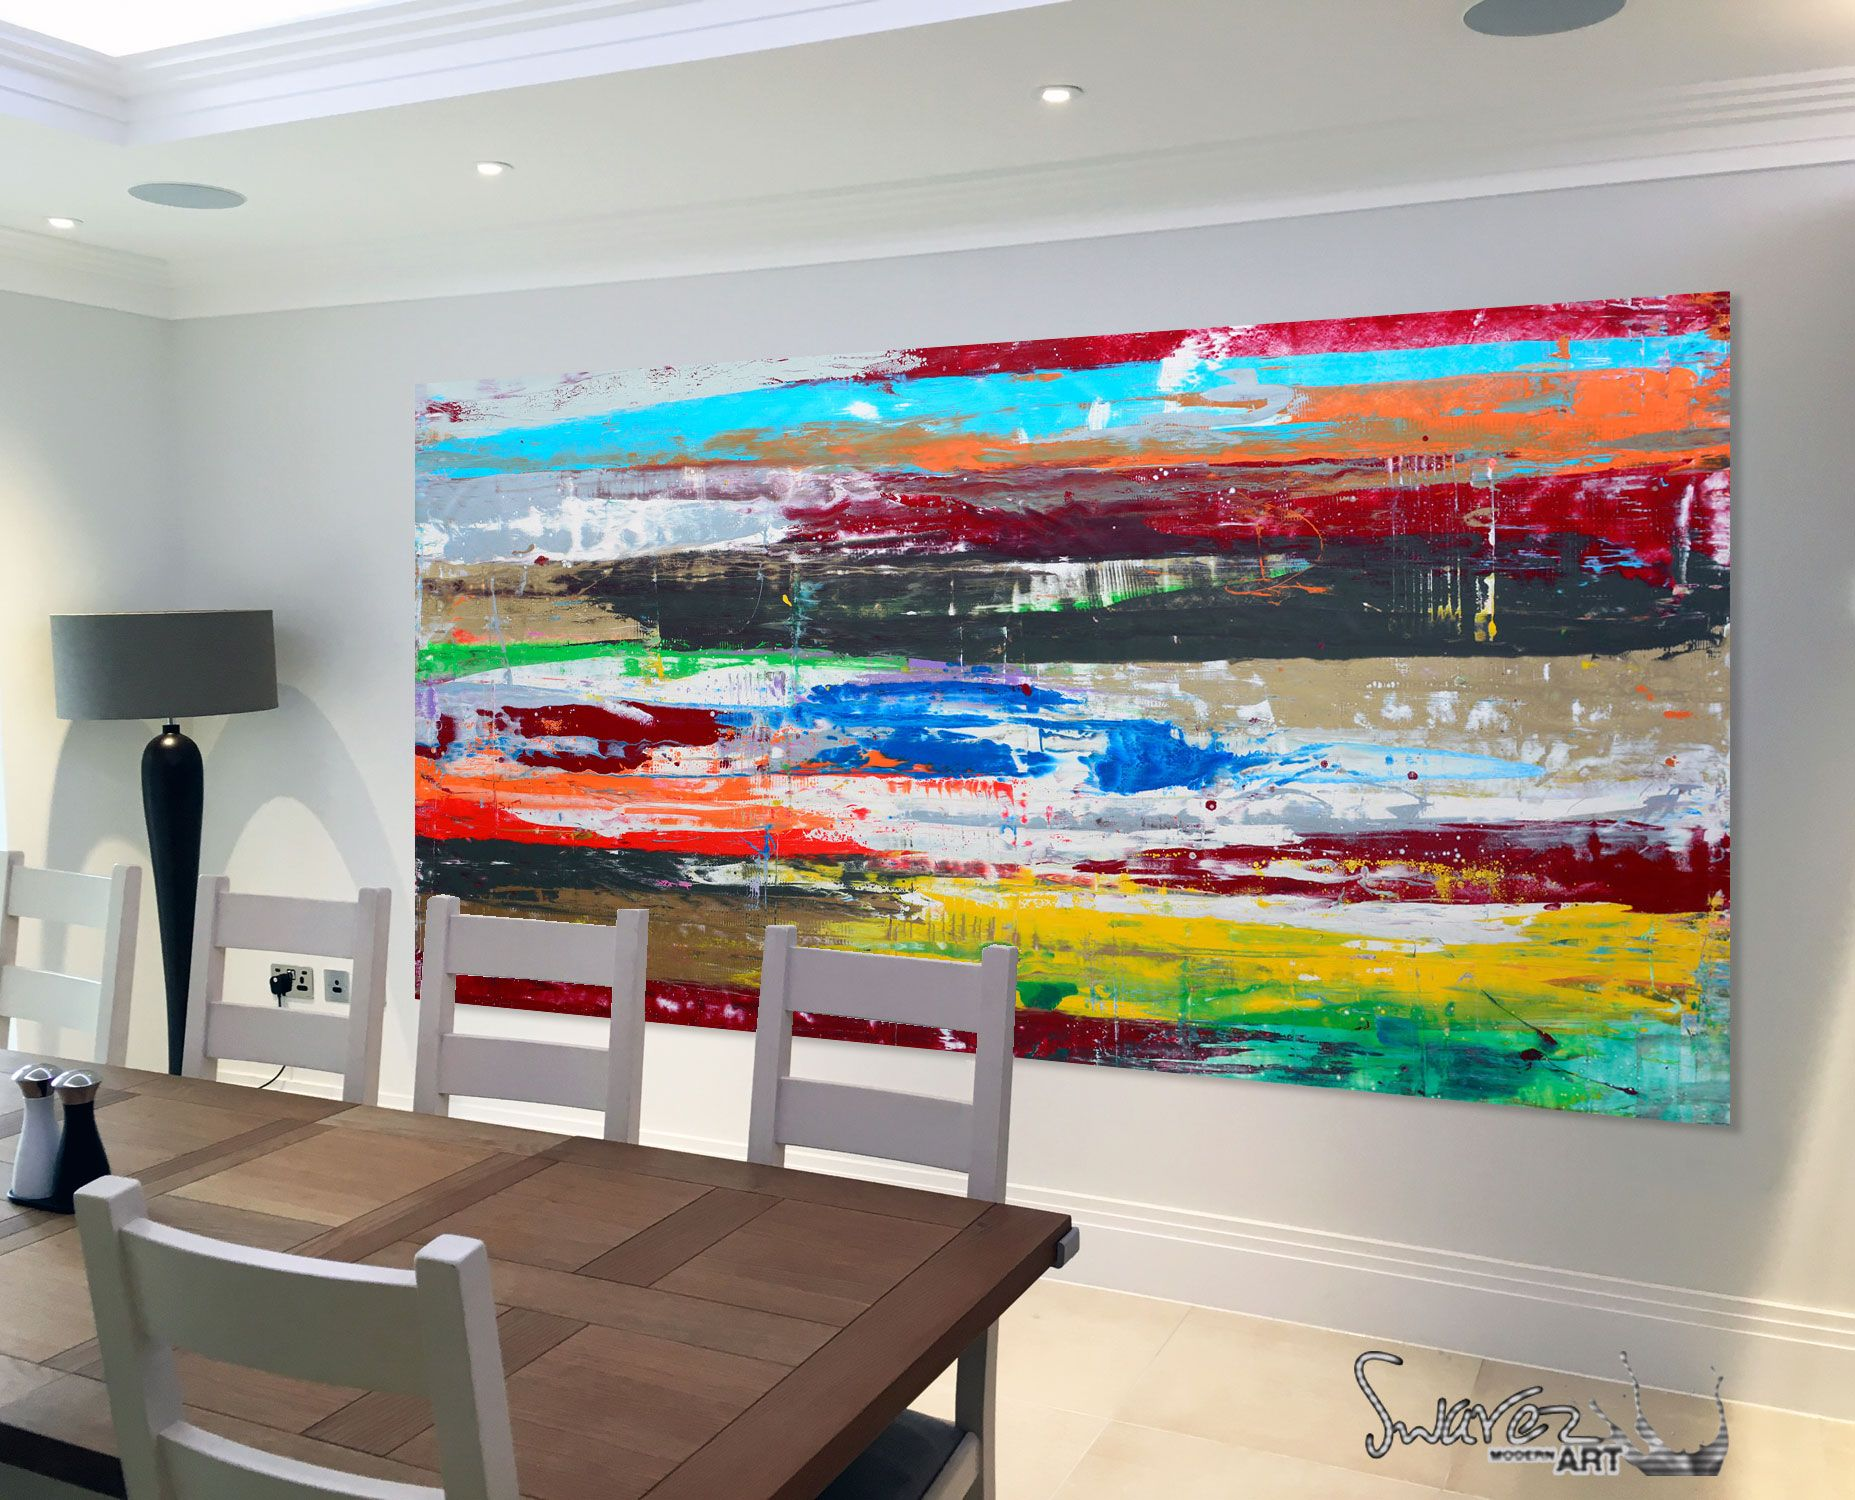 Large Multi Coloured Abstract Canvas Made Up Of Long Horizontal Lines Made In Enamel Paint B Horizontal Painting Colorful Canvas Paintings Modern Art For Sale